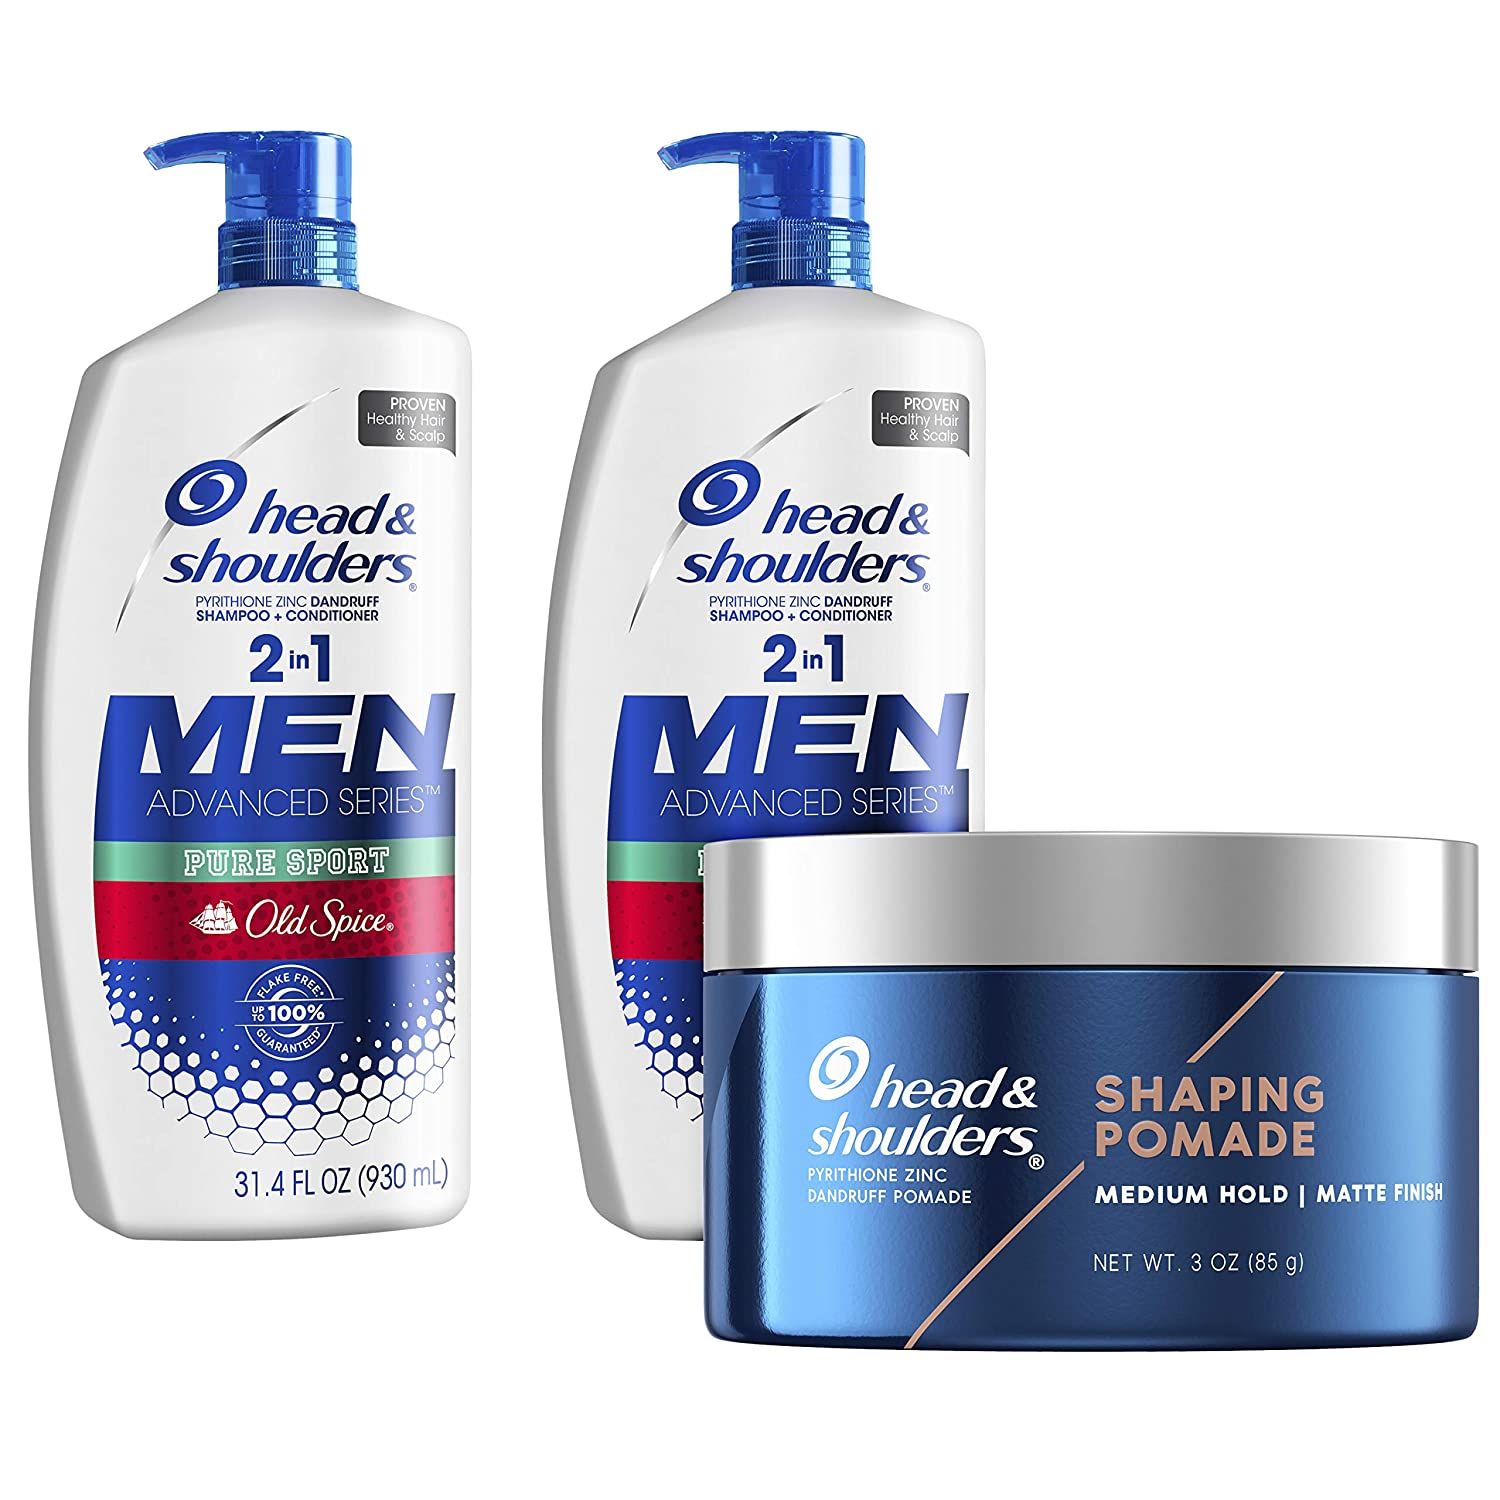 Head and Shoulders Anti Dandruff Treatment and Scalp Care 2 in 1 Shampoo and Conditioner & Pomade, Old Spice Pure Sport Bundle